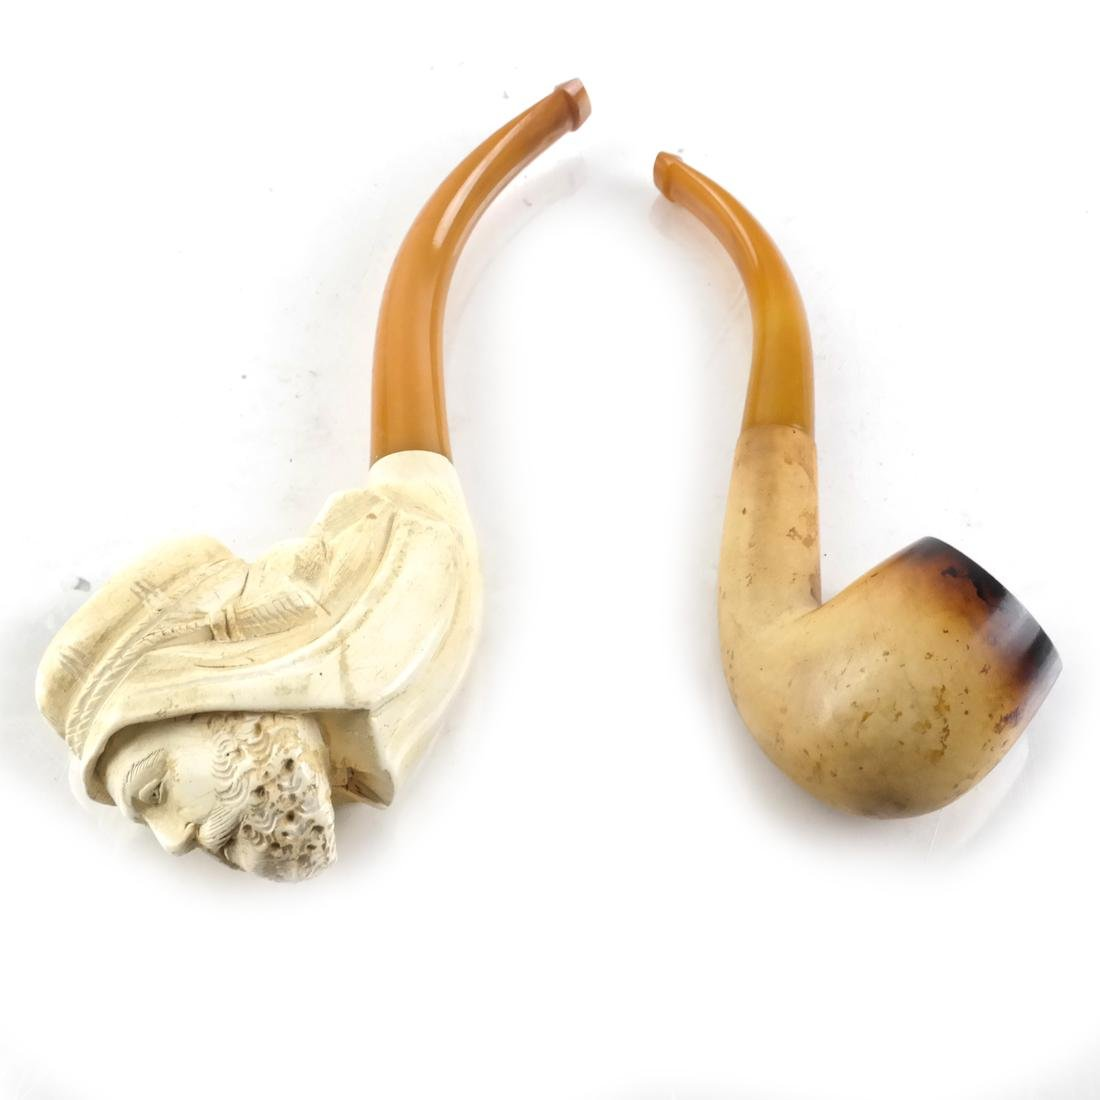 Antique Meerschaum Pipe, Arab's Head, with Another